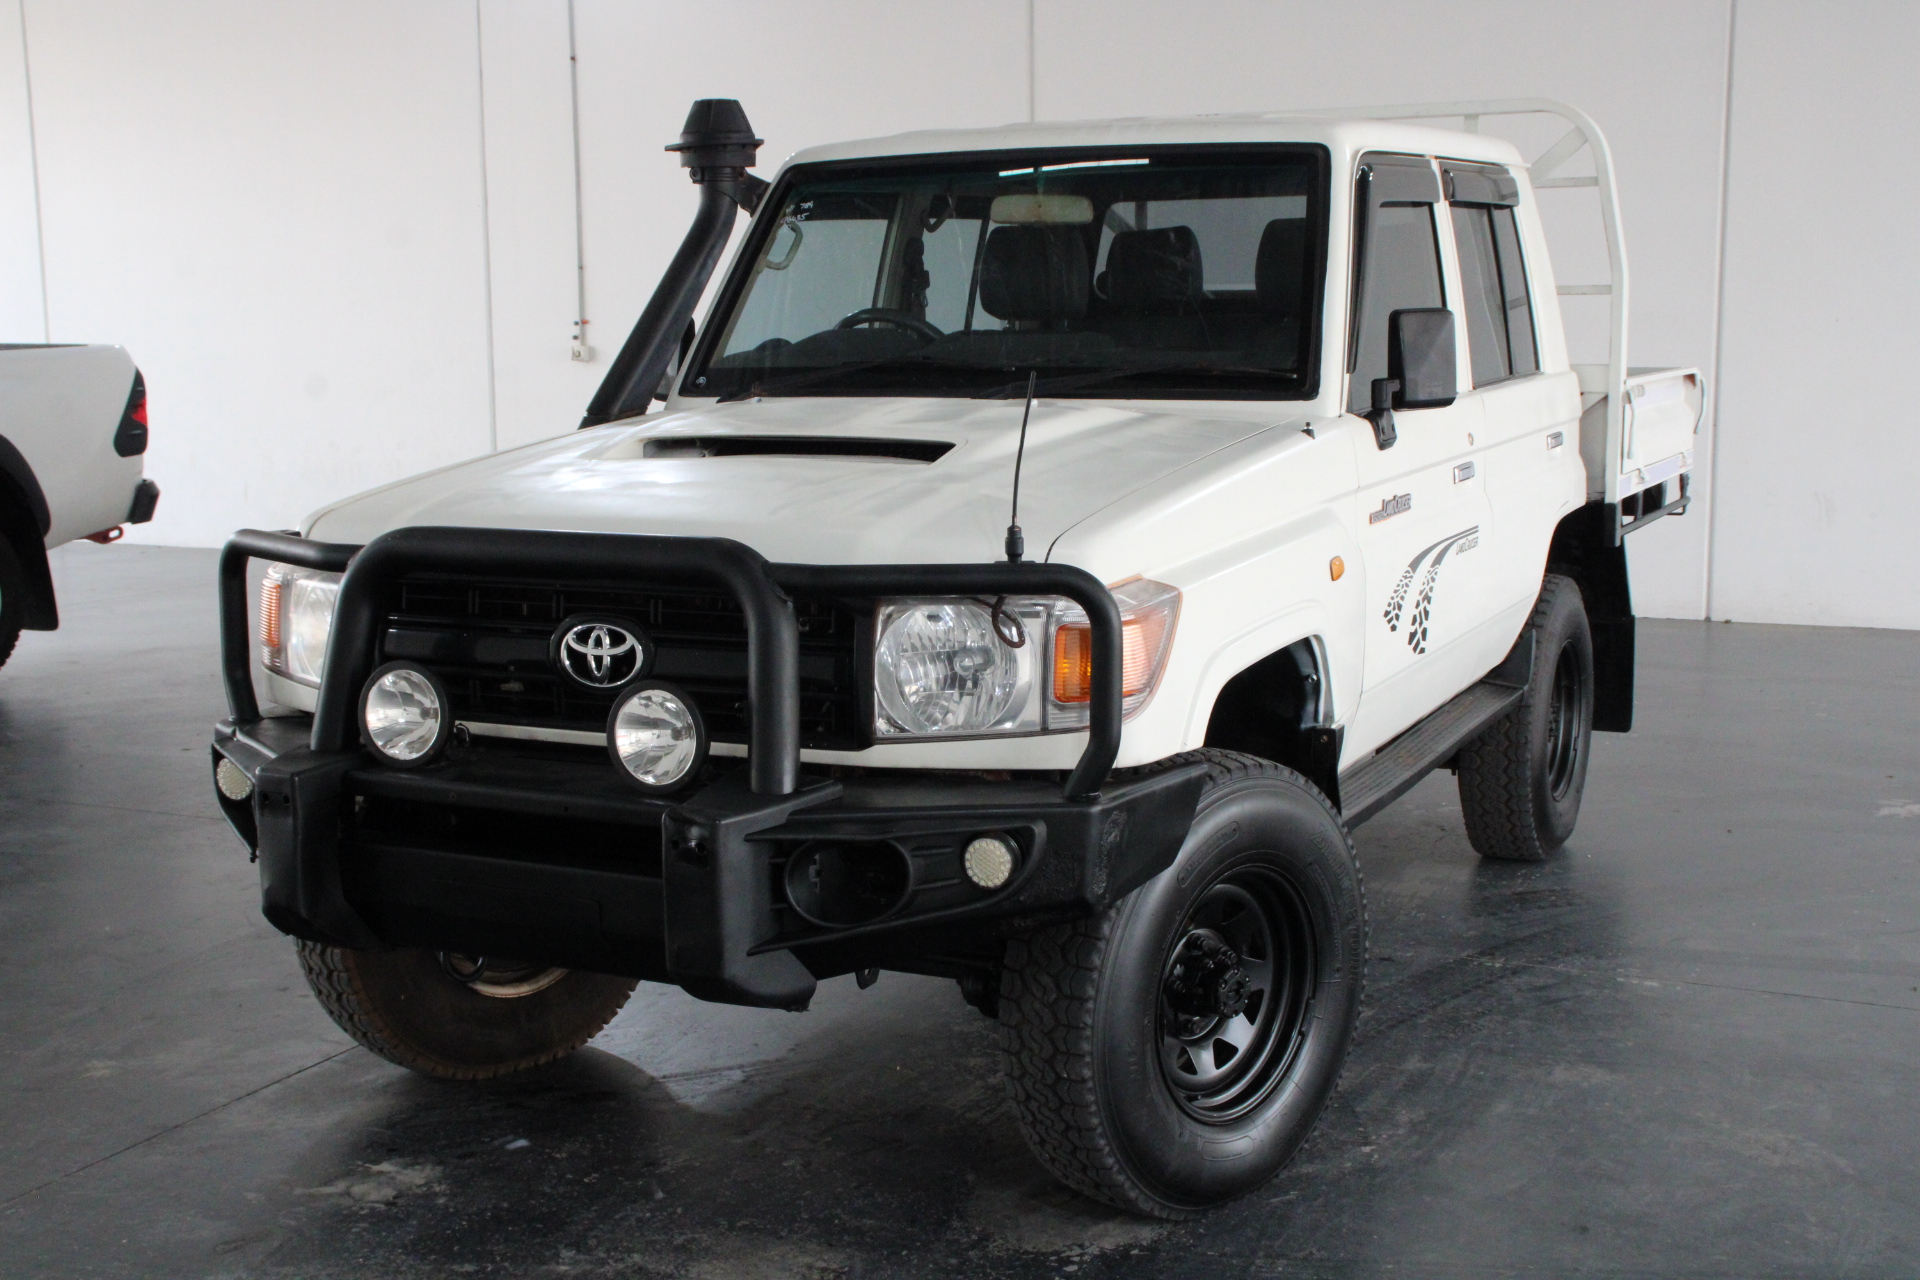 2011 Toyota Landcruiser Workmate 4x4 VDJ76R T/Diesel Manl Dual Cab Chassis